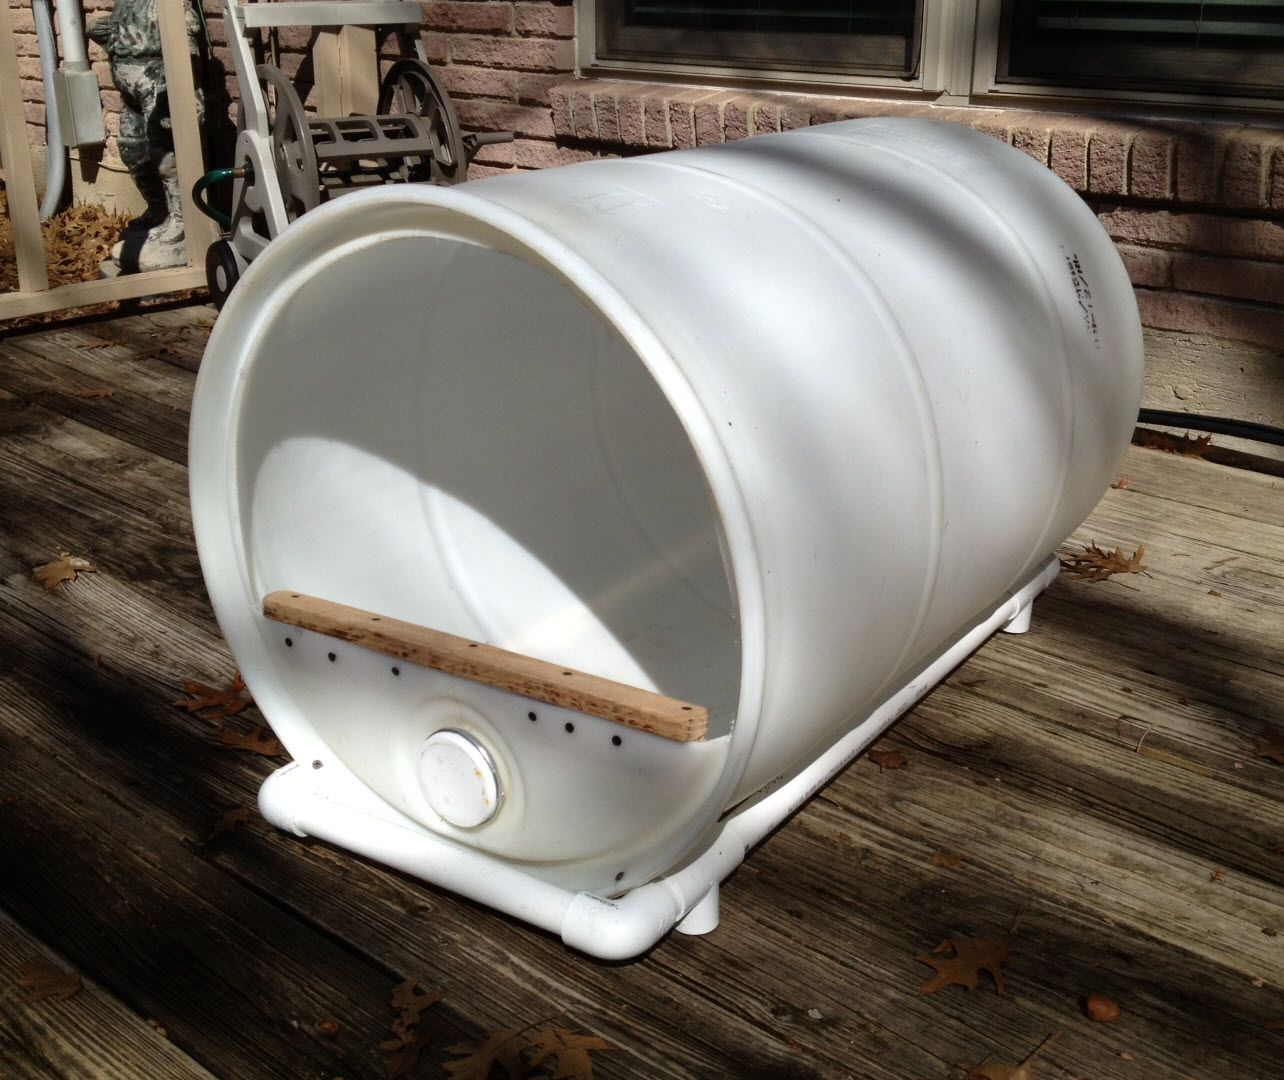 Plastic barrel dog house mascotas pinterest dog for Barrel dog house designs